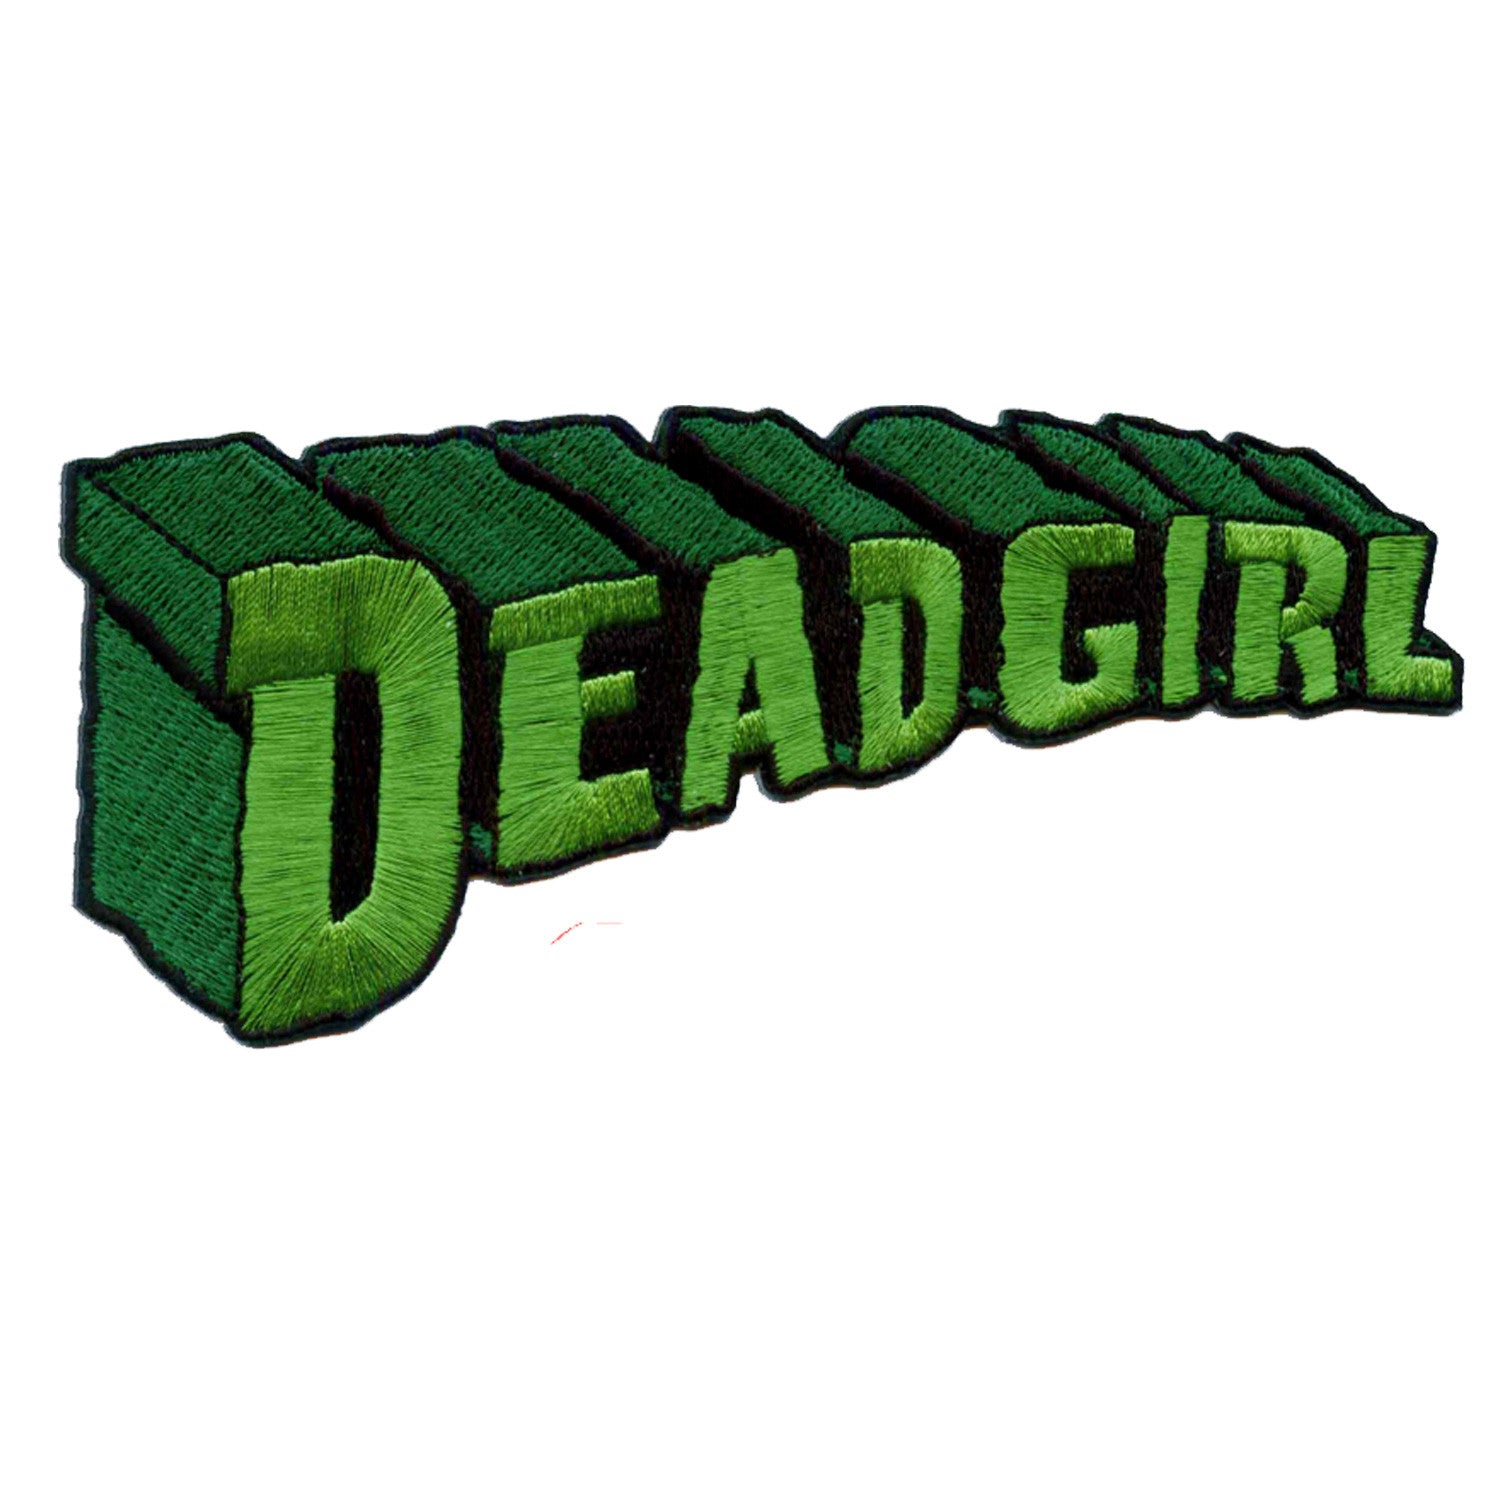 Super Dead Girl Patch